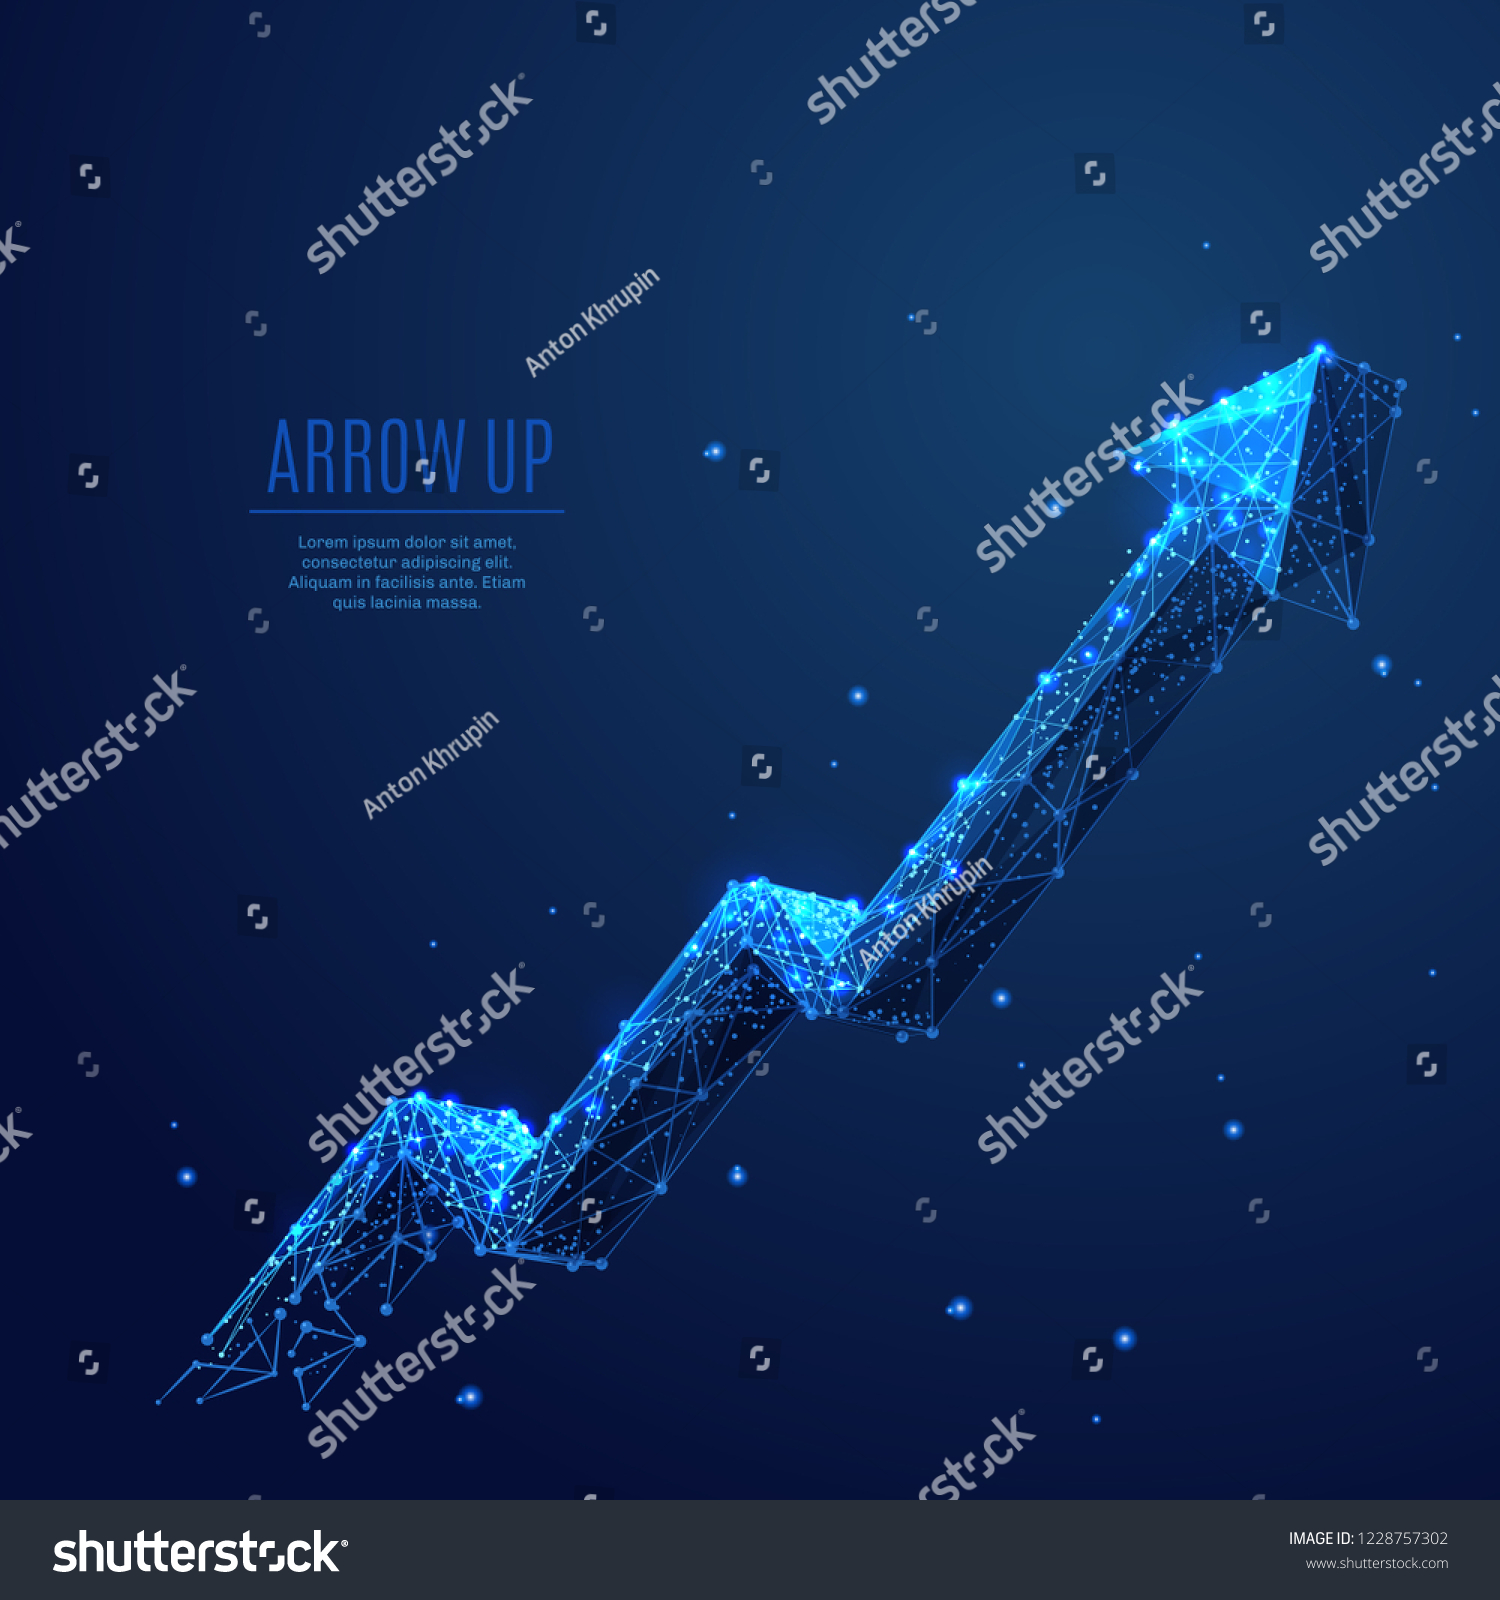 An arrow Up composed of polygons. Low poly vector illustration of a starry sky or Comos style. A growth symbol consists of lines, dots and shapes. Business strategy or successful symbol.